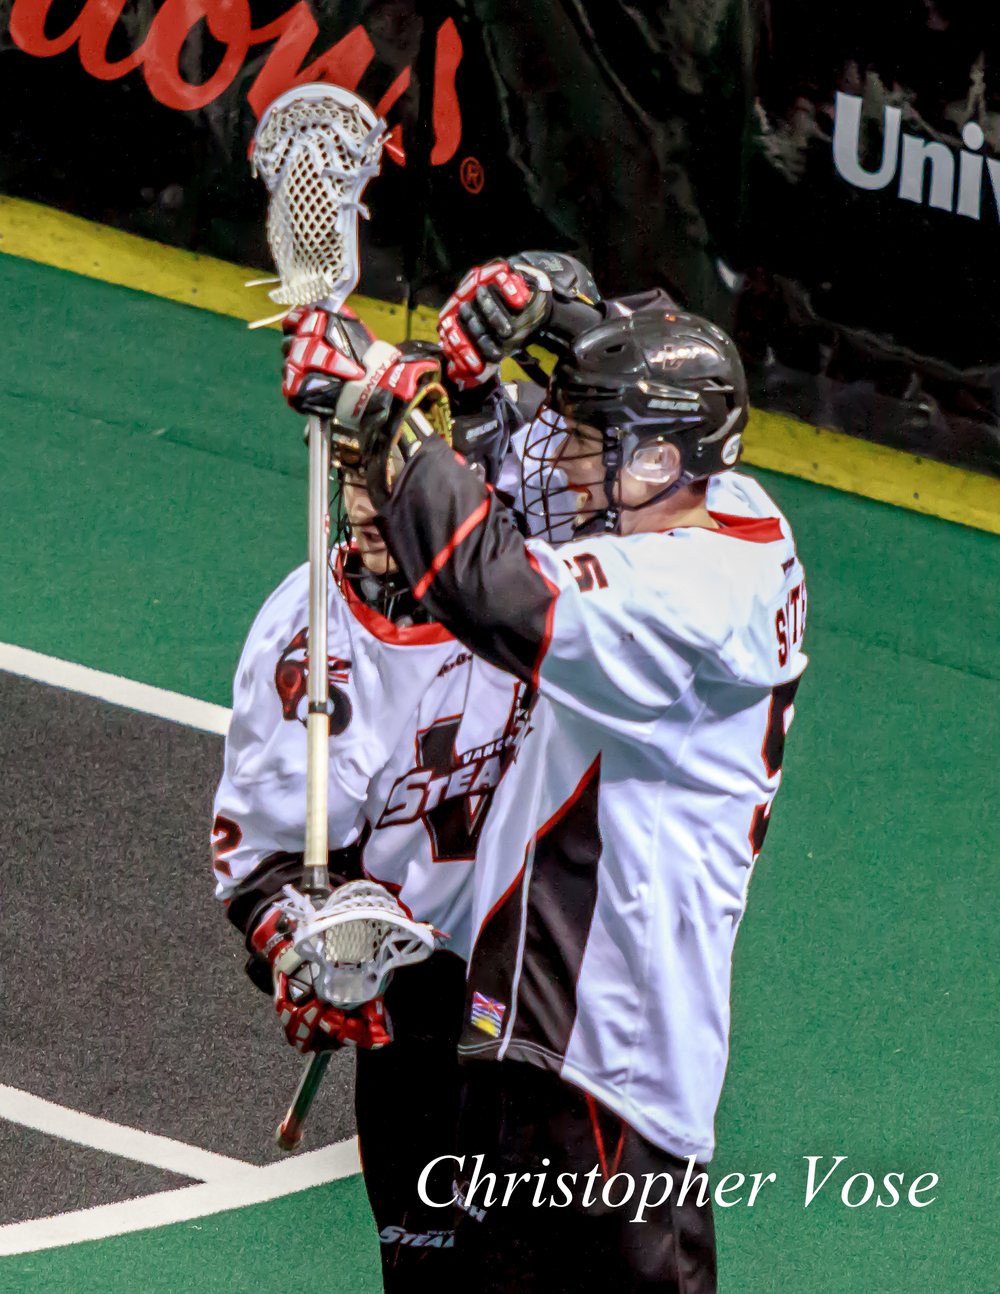 2014-01-11 Cody Bremner Goal Celebration 1.jpg